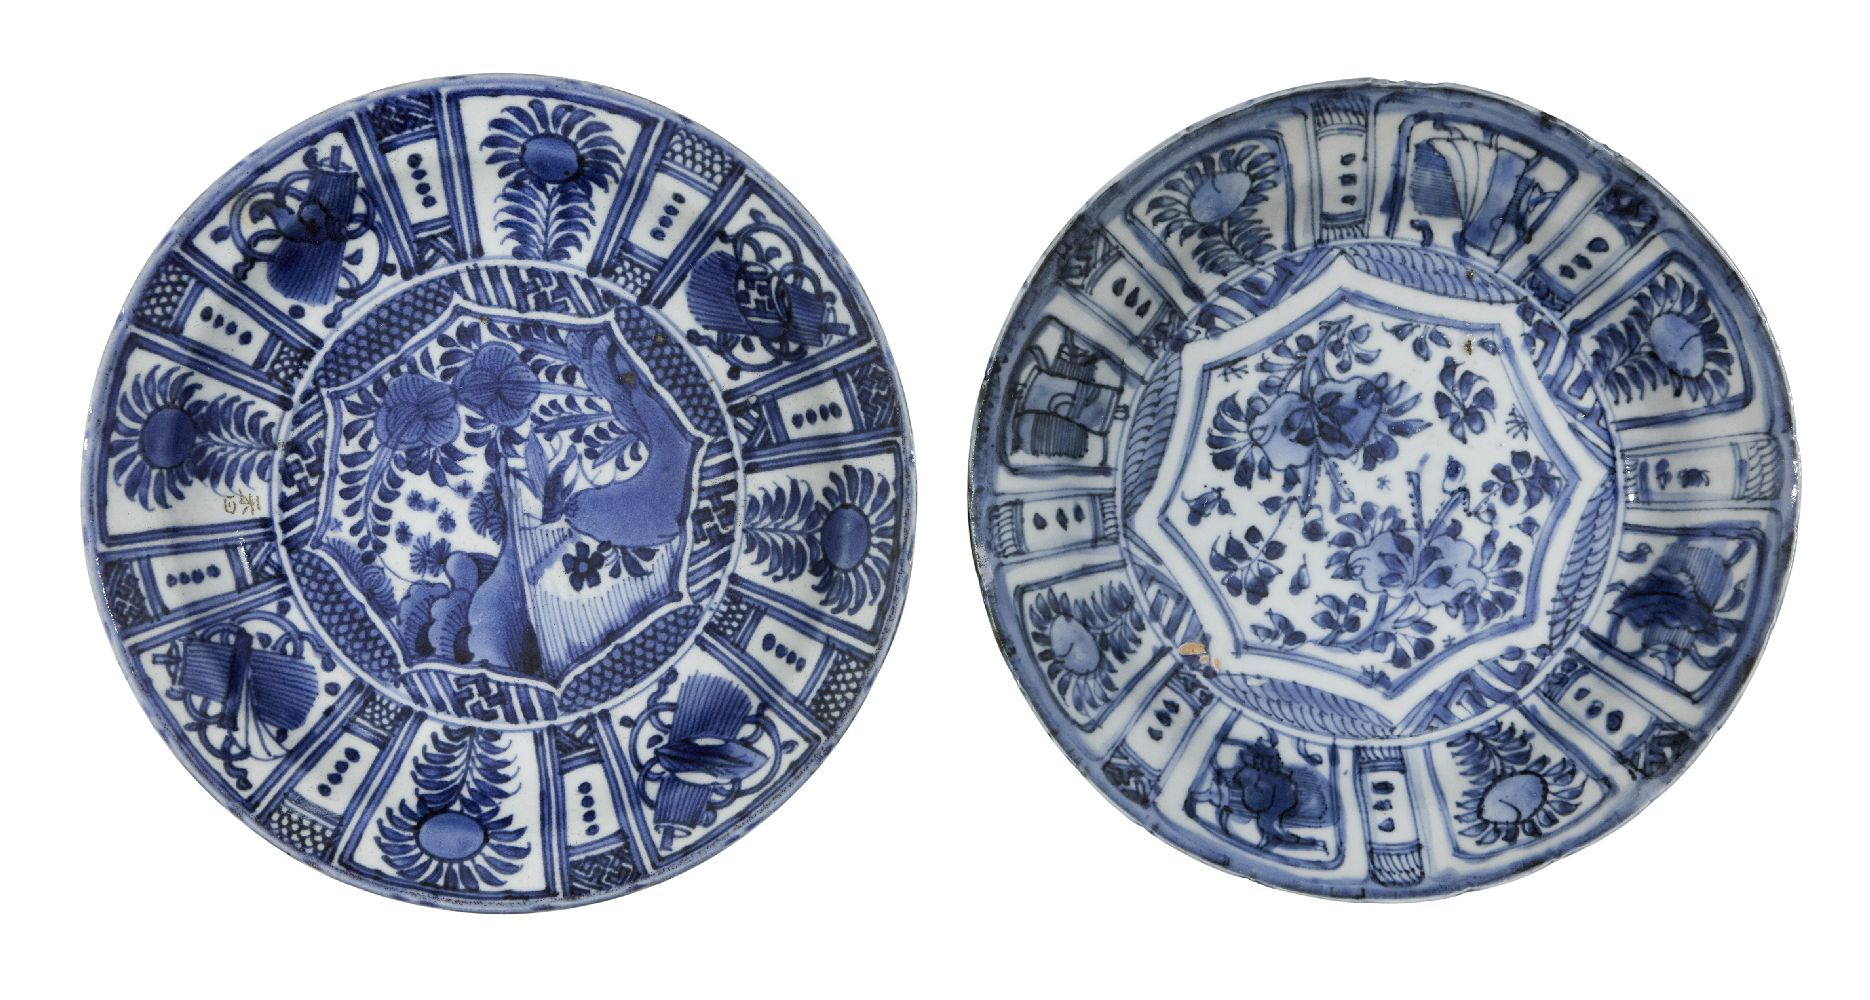 Two Chinese and Japanese export dishes, 17th century, each painted in underglaze blue with floral